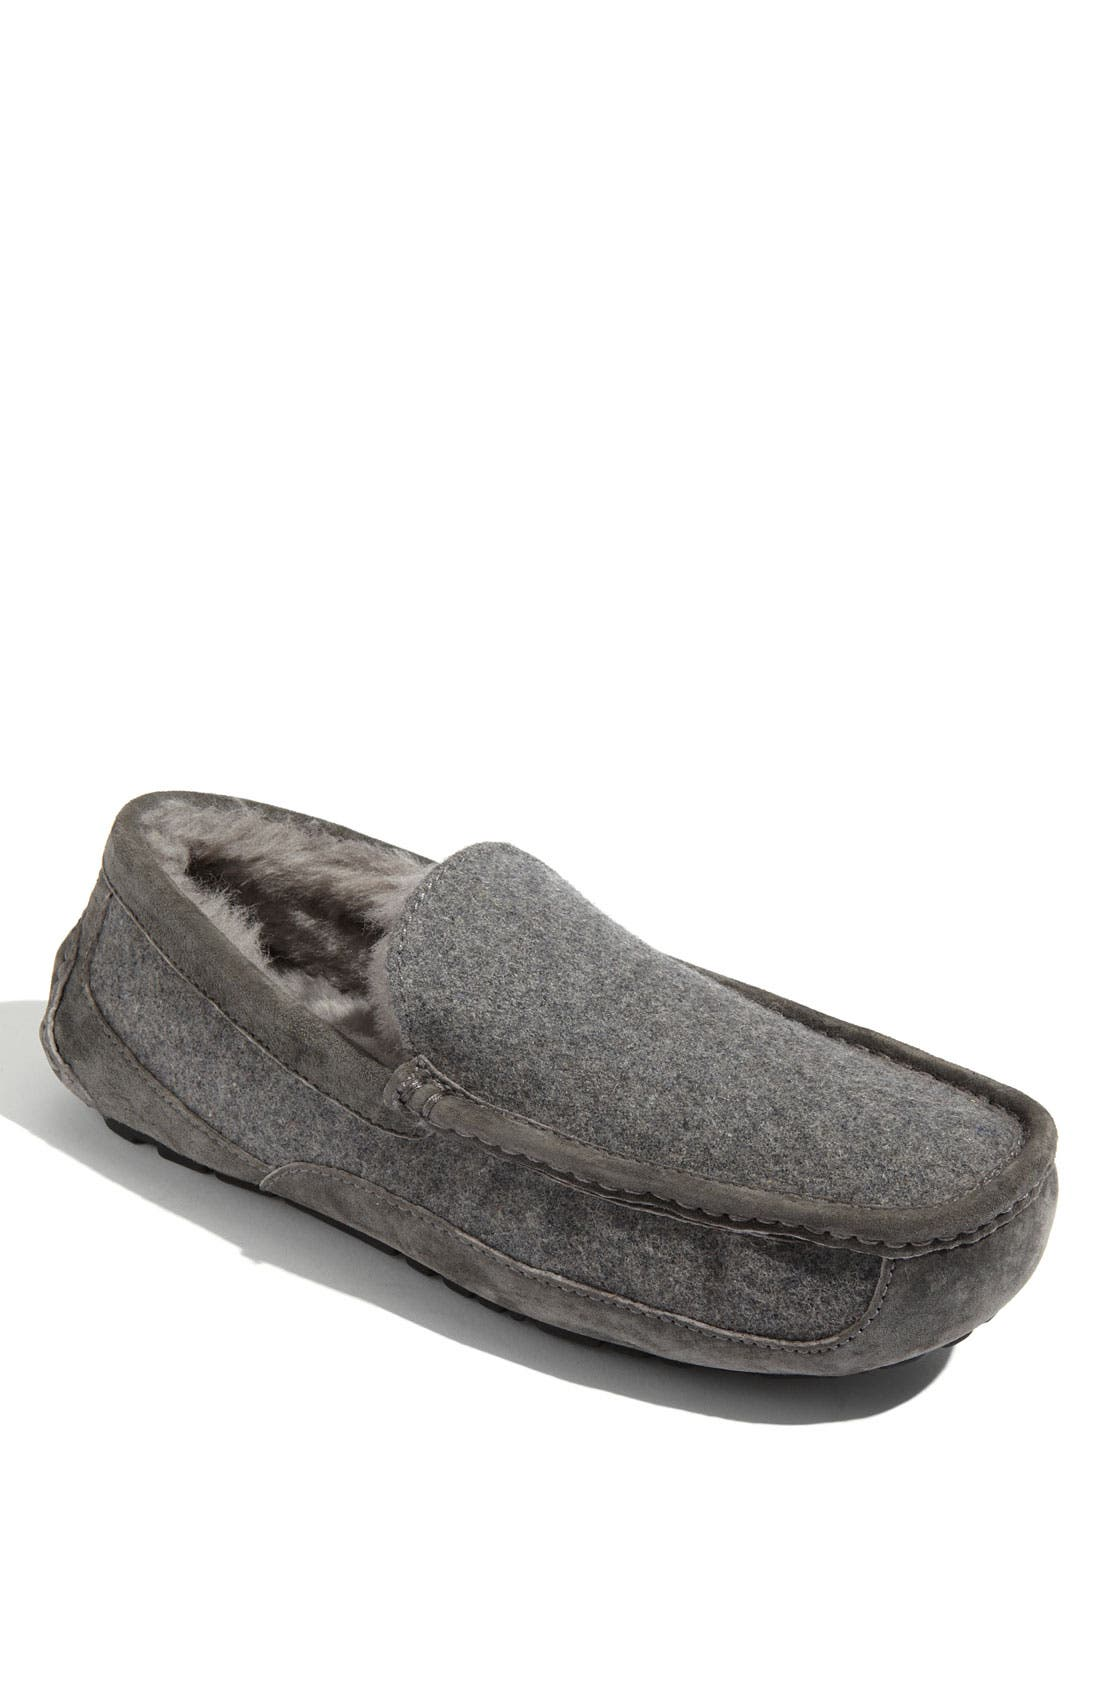 Australia 'Ascot' Wool Slipper,                             Main thumbnail 1, color,                             027